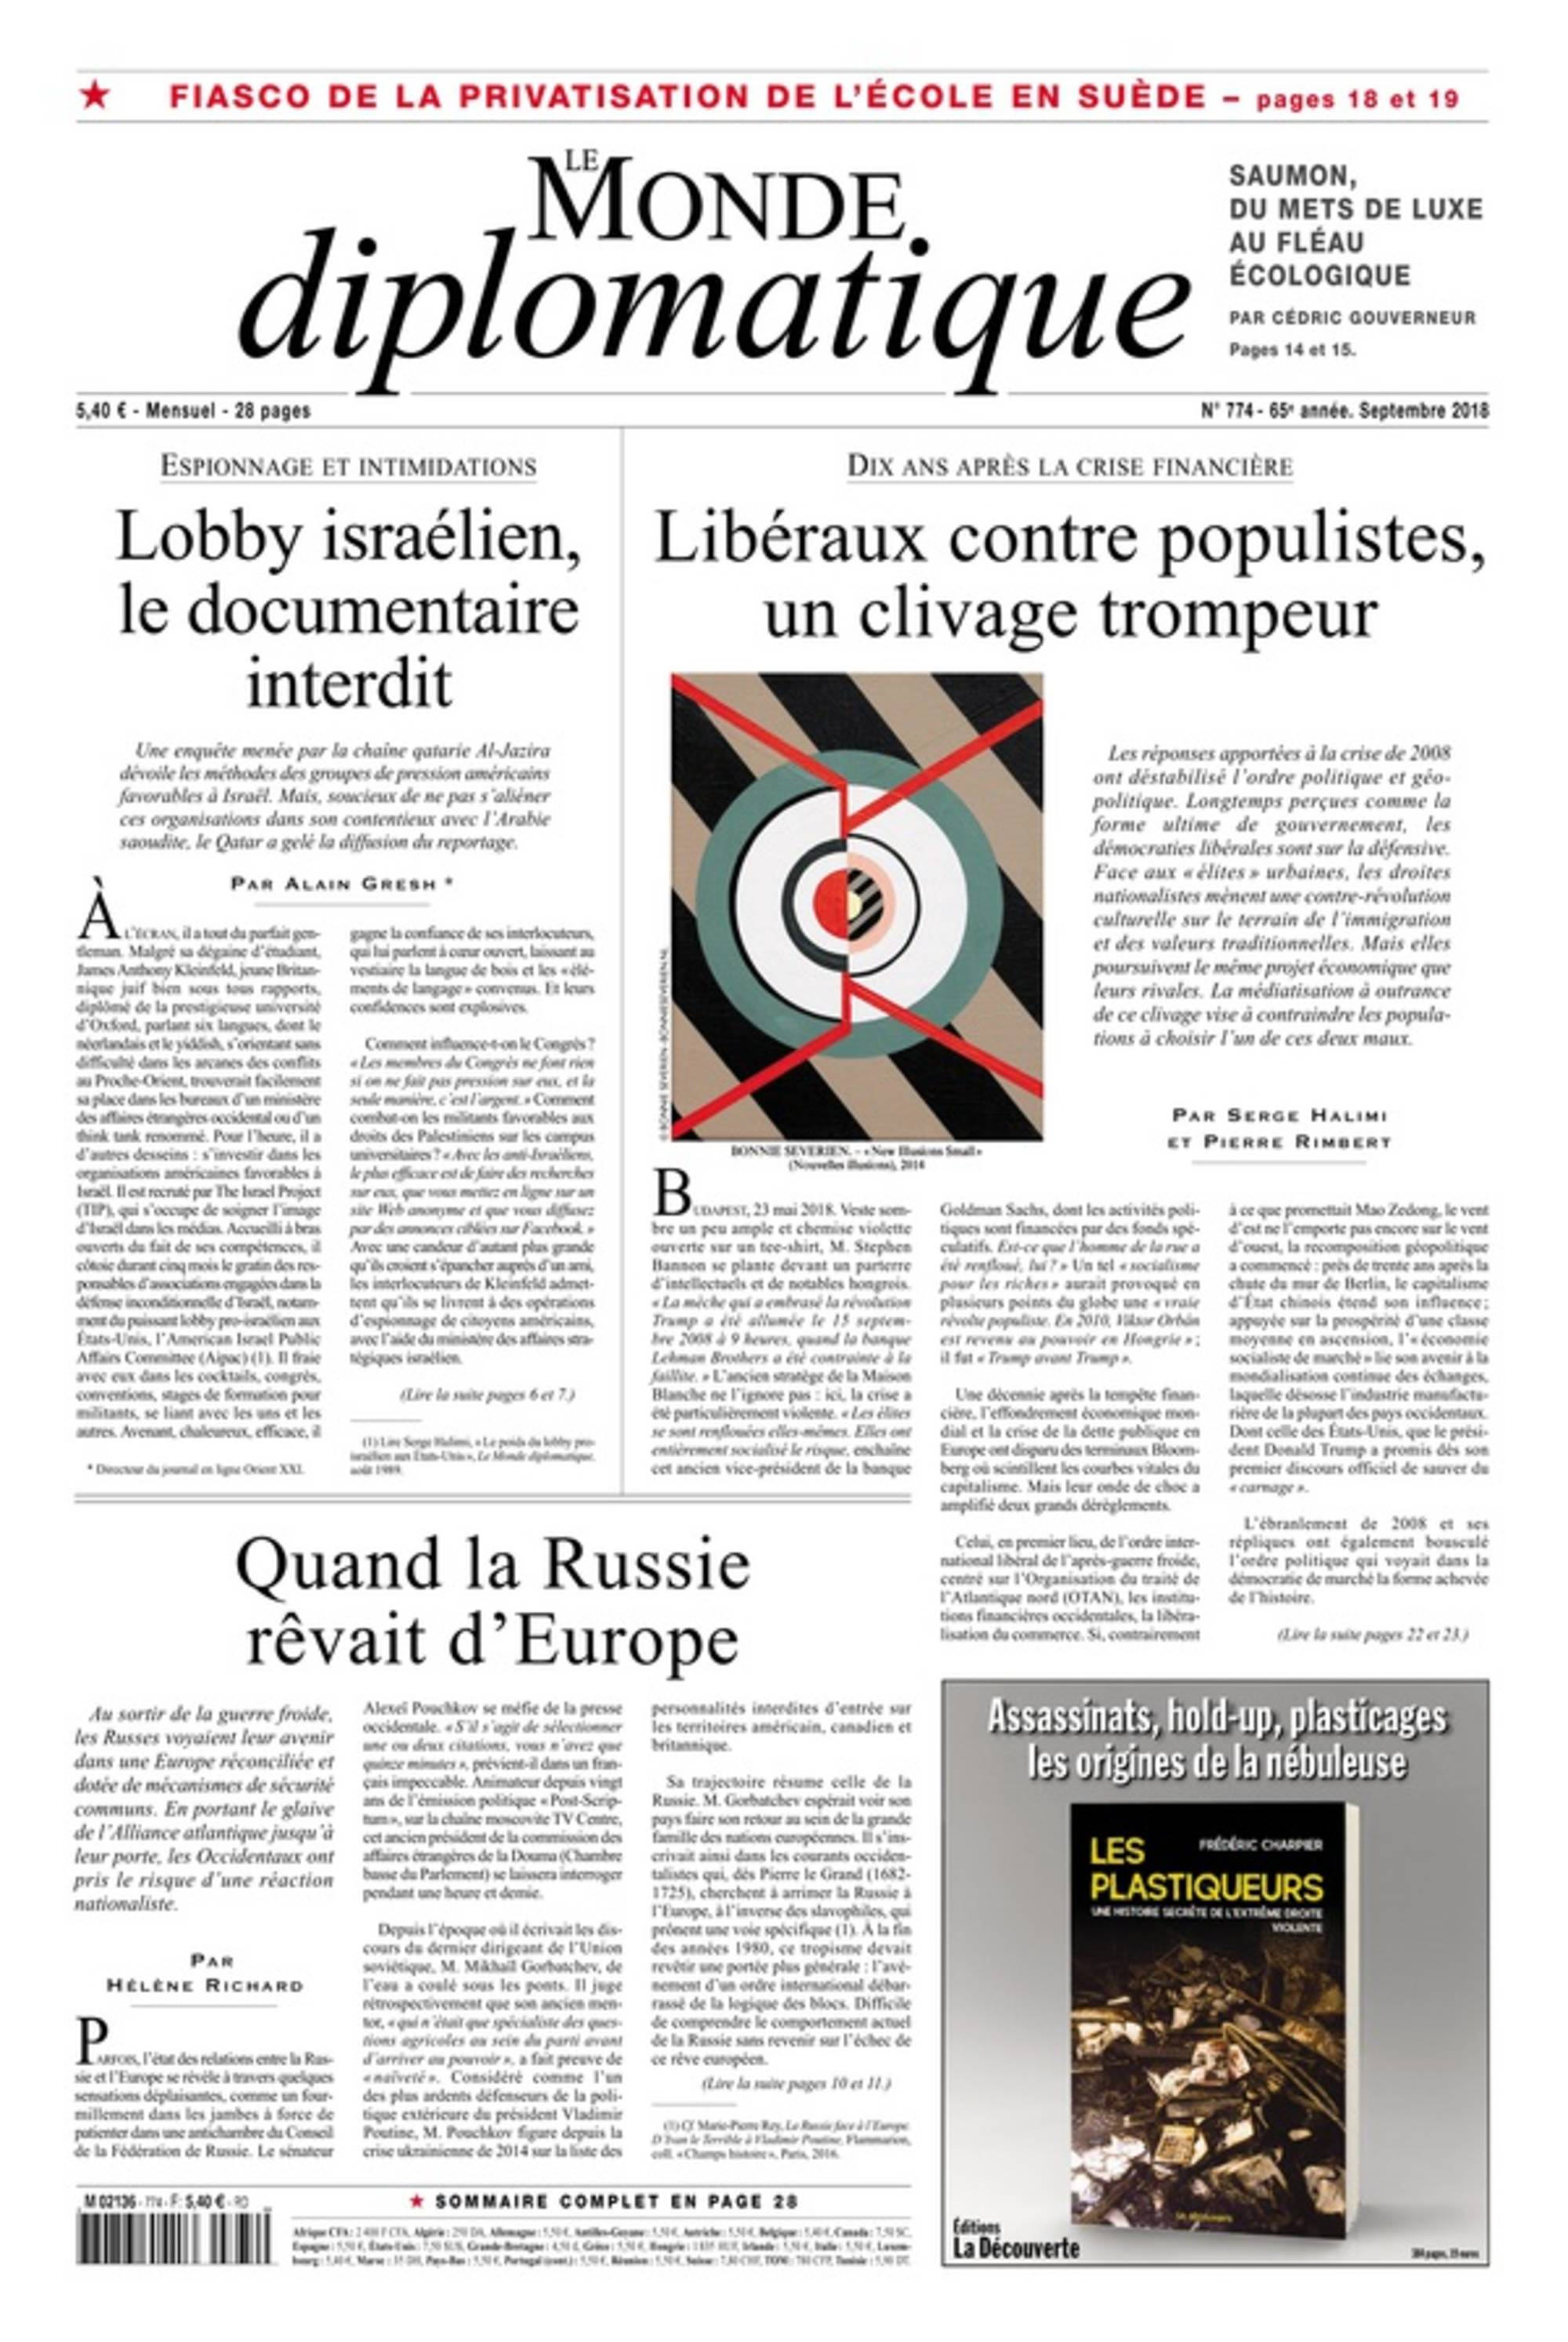 Publication in Le Monde Newspaper, Paris France